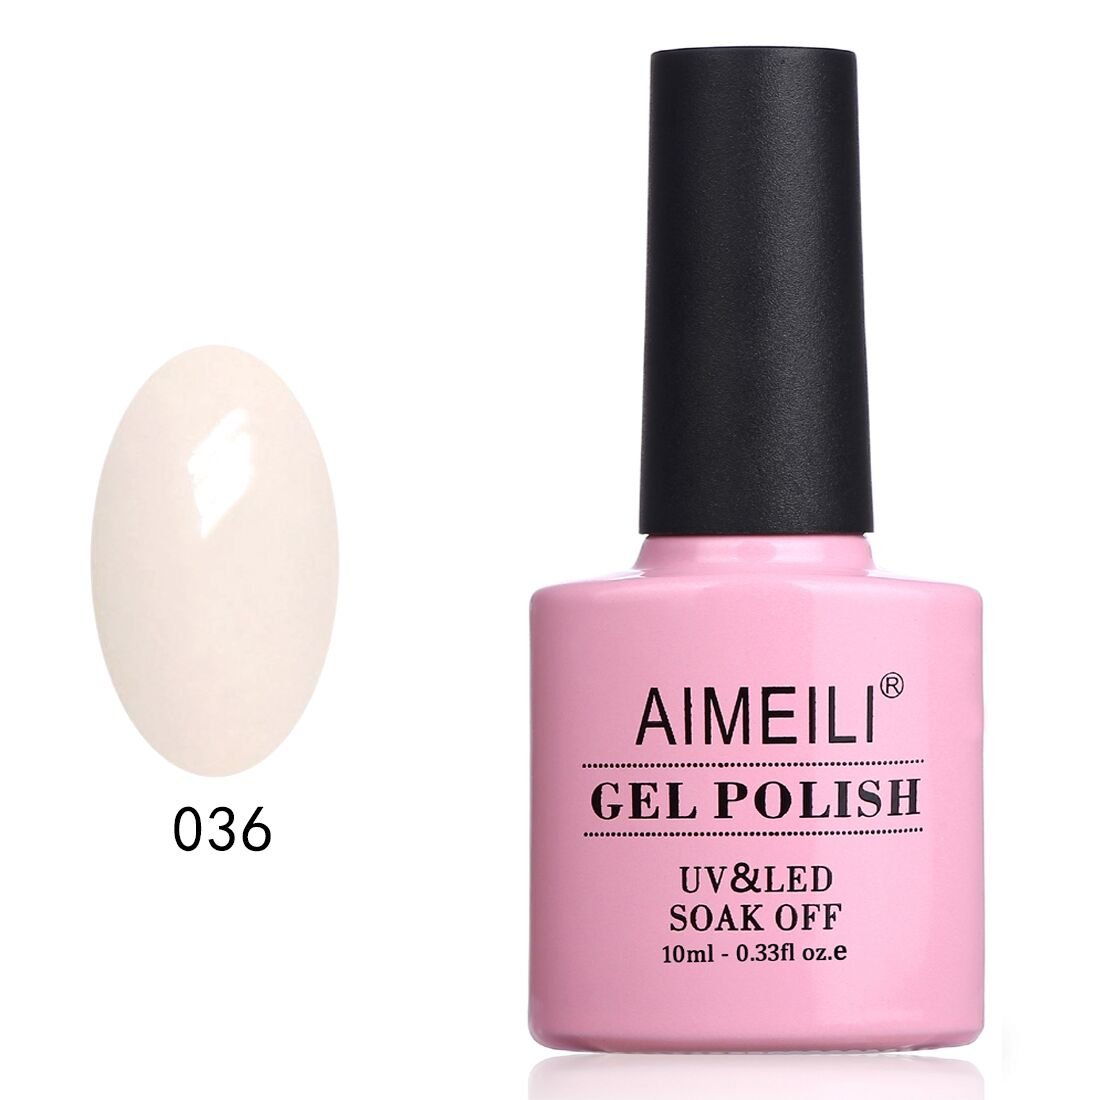 AIMEILI Soak Off UV LED Gel Nail Polish - Soft Pink (036) 10ml